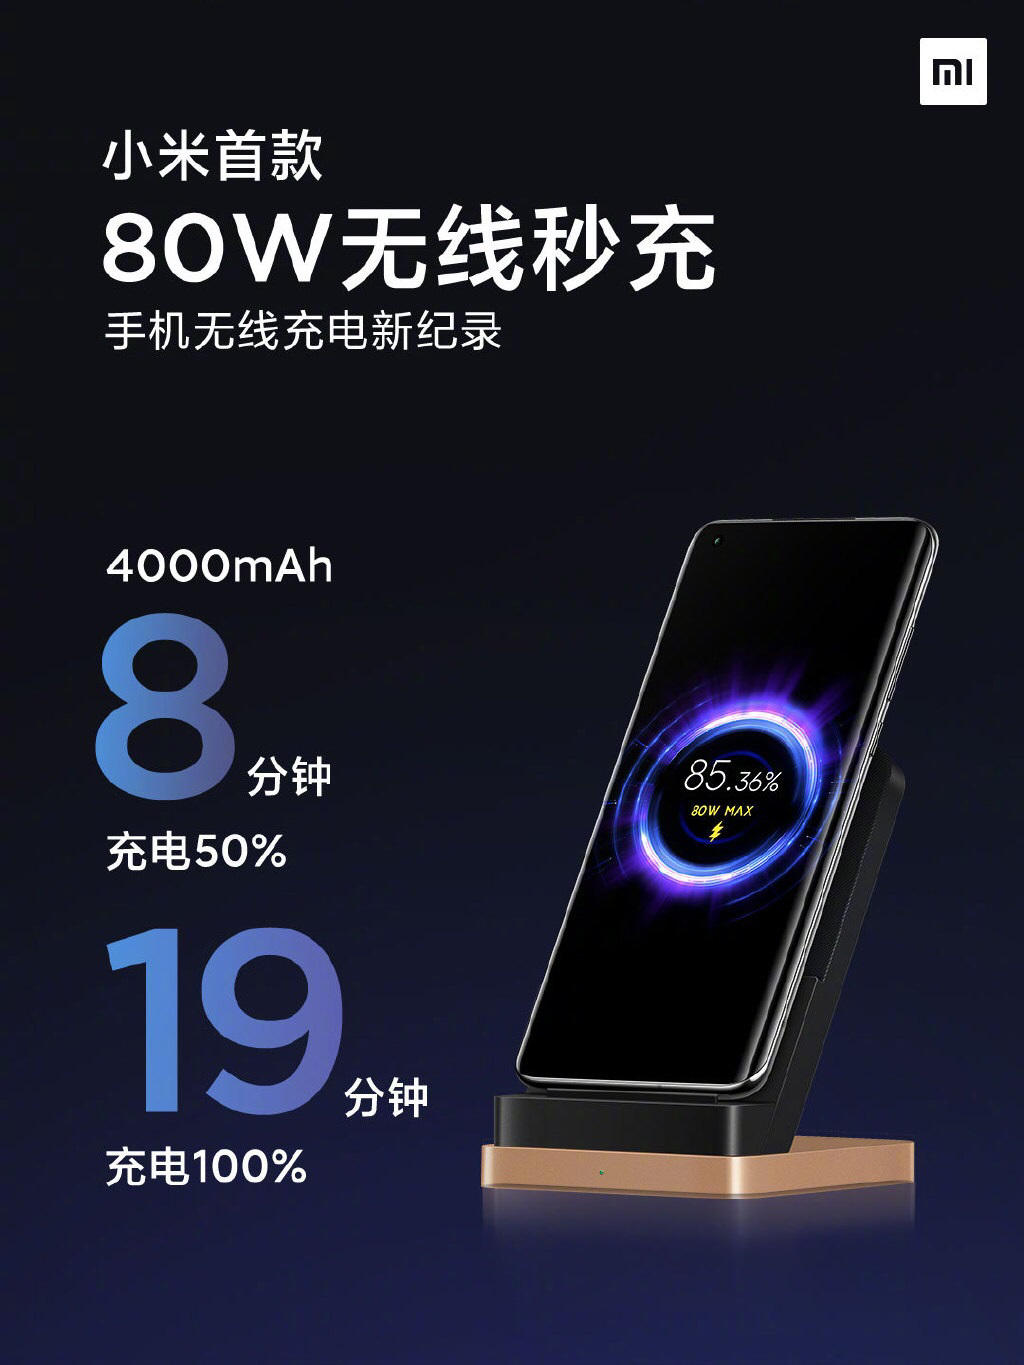 Xiaomi unveils world's fastest wireless charging tech, recharges 4,000mAh battery in 20 mins-CnTechPost